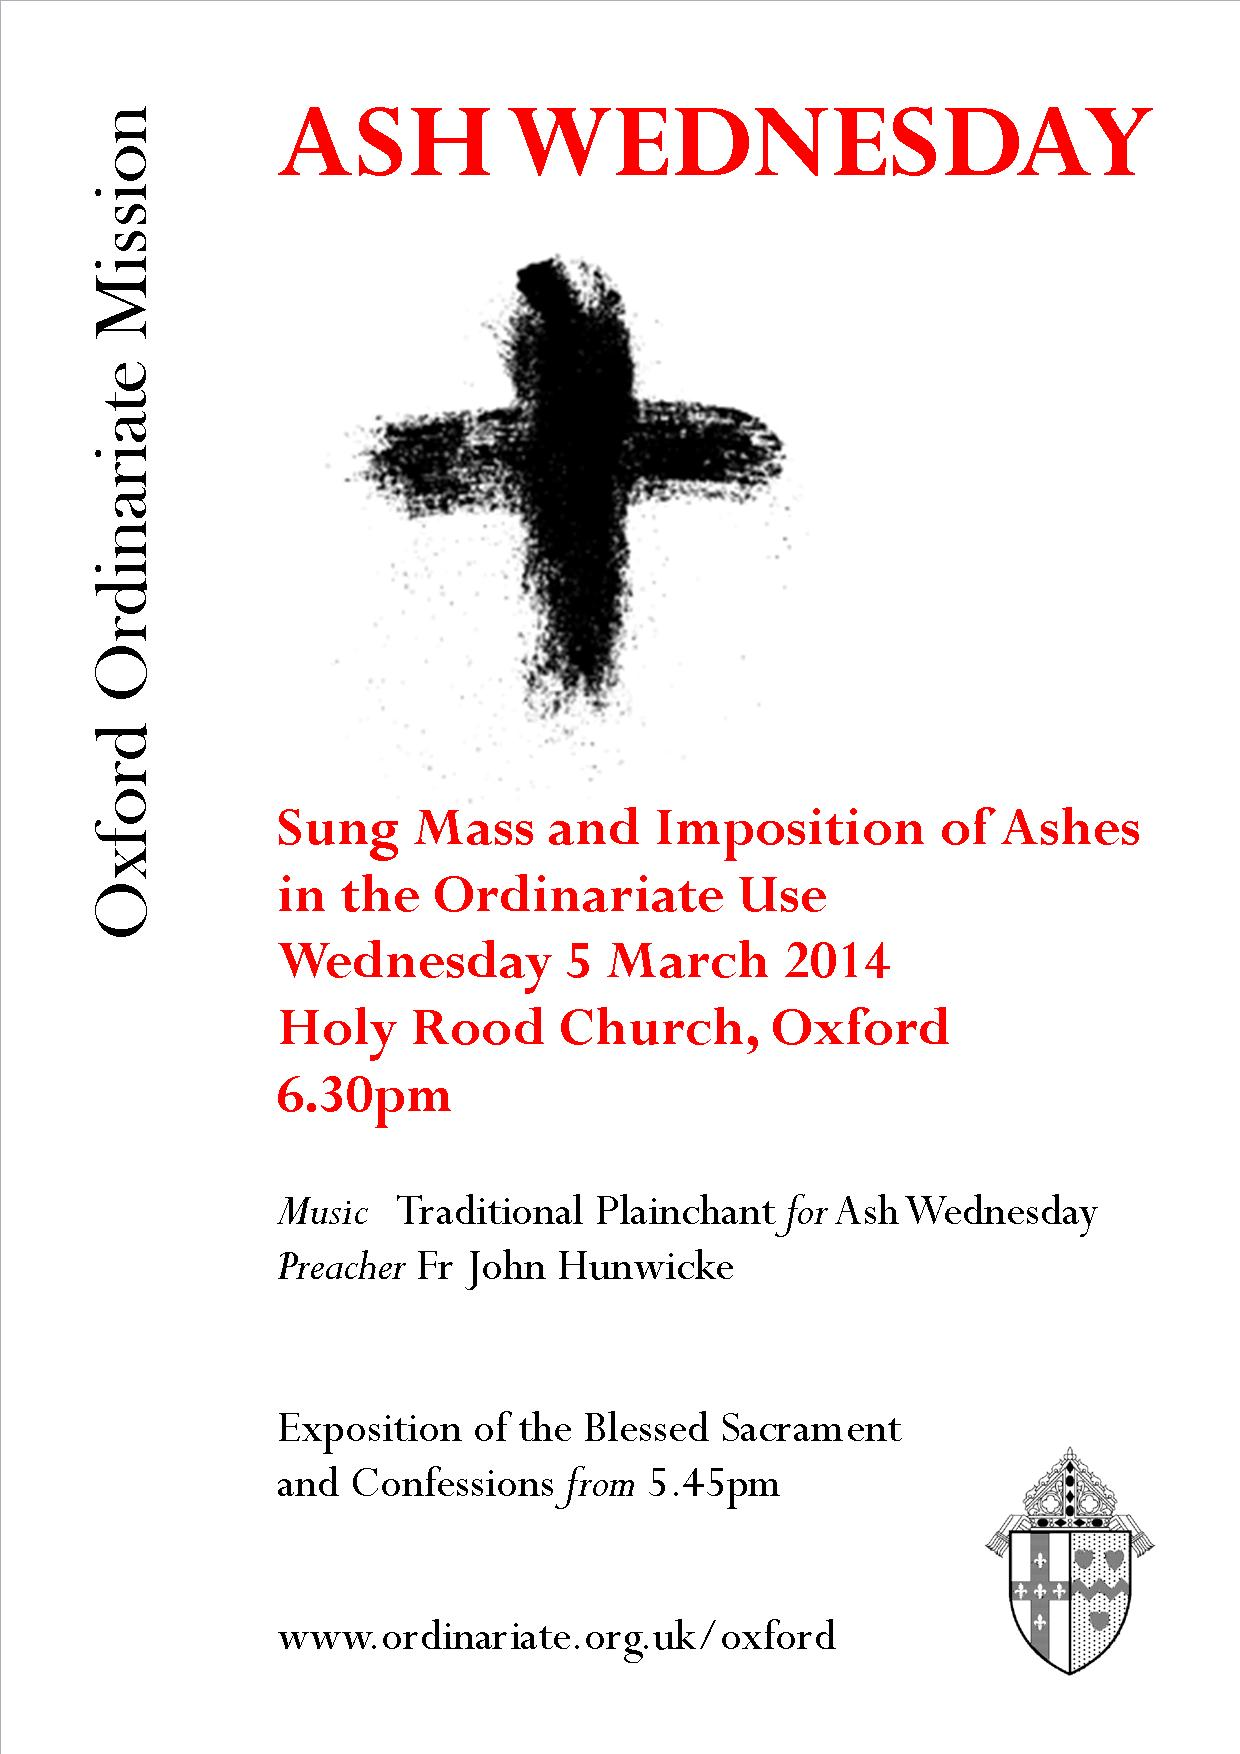 Ash Wednesday 5 March